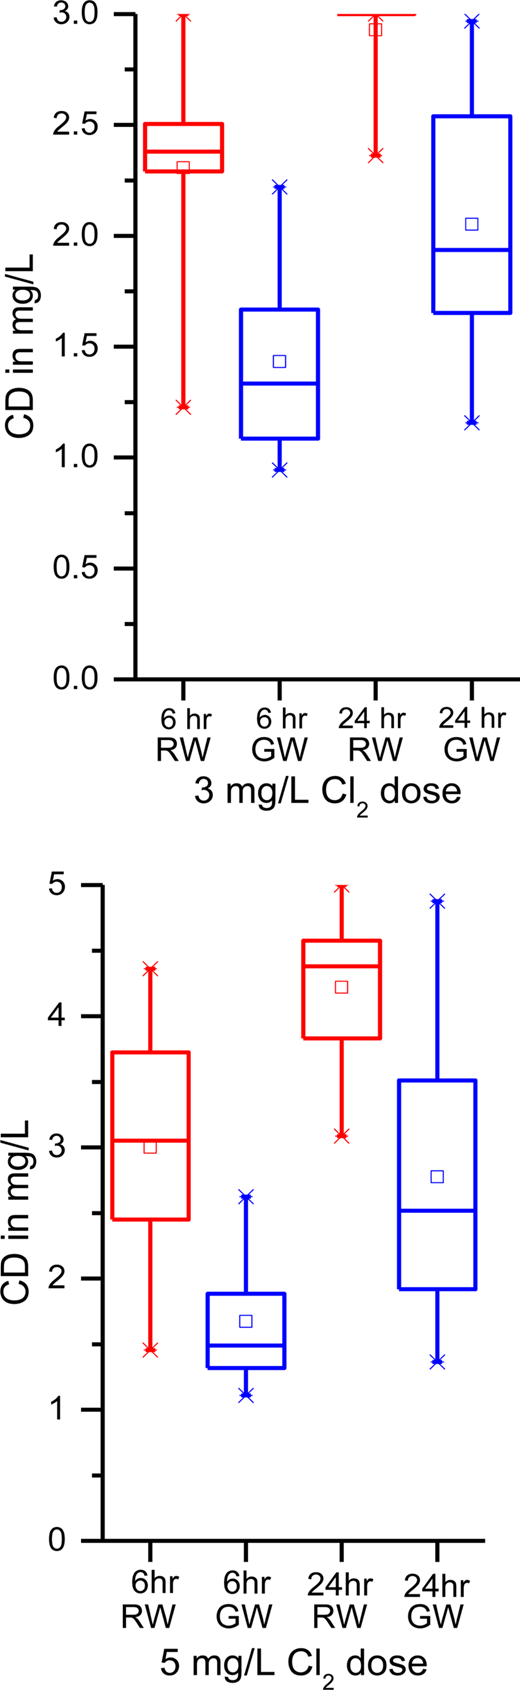 Comparison of CD values for RW and GW at different chlorination doses and contact times.